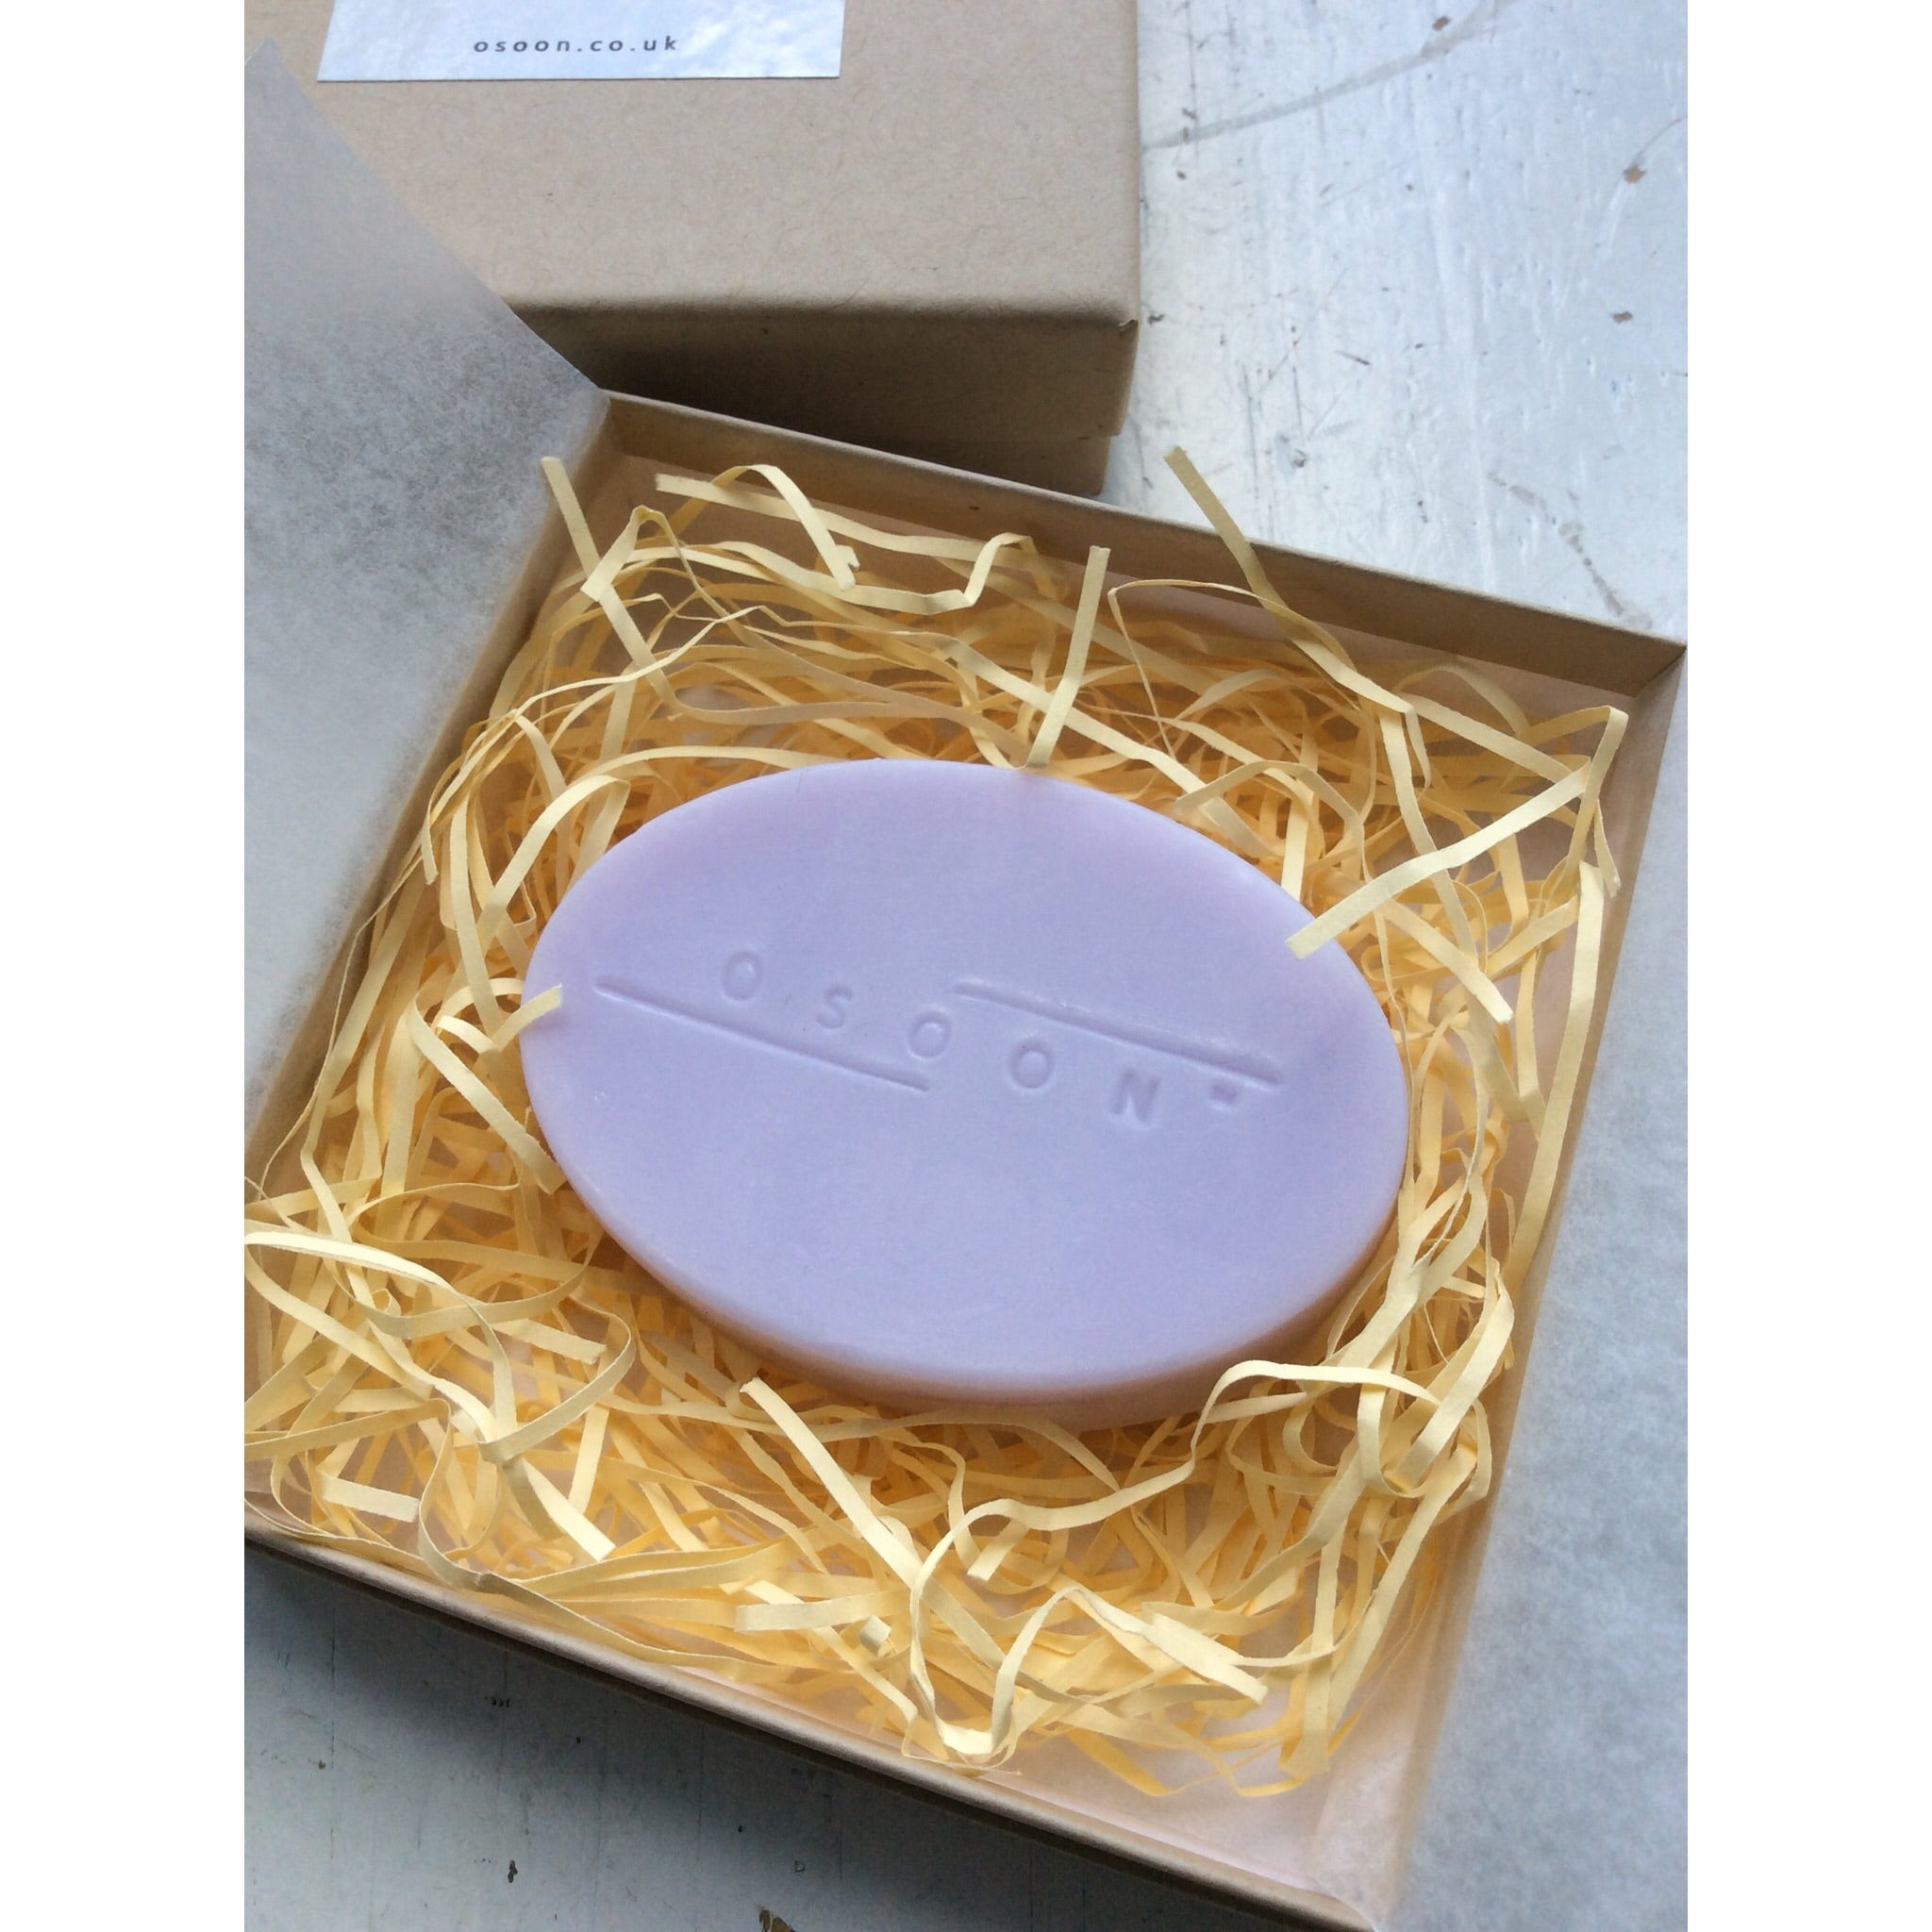 OSOON HAND MADE SOAP / LAVENDER DREAM